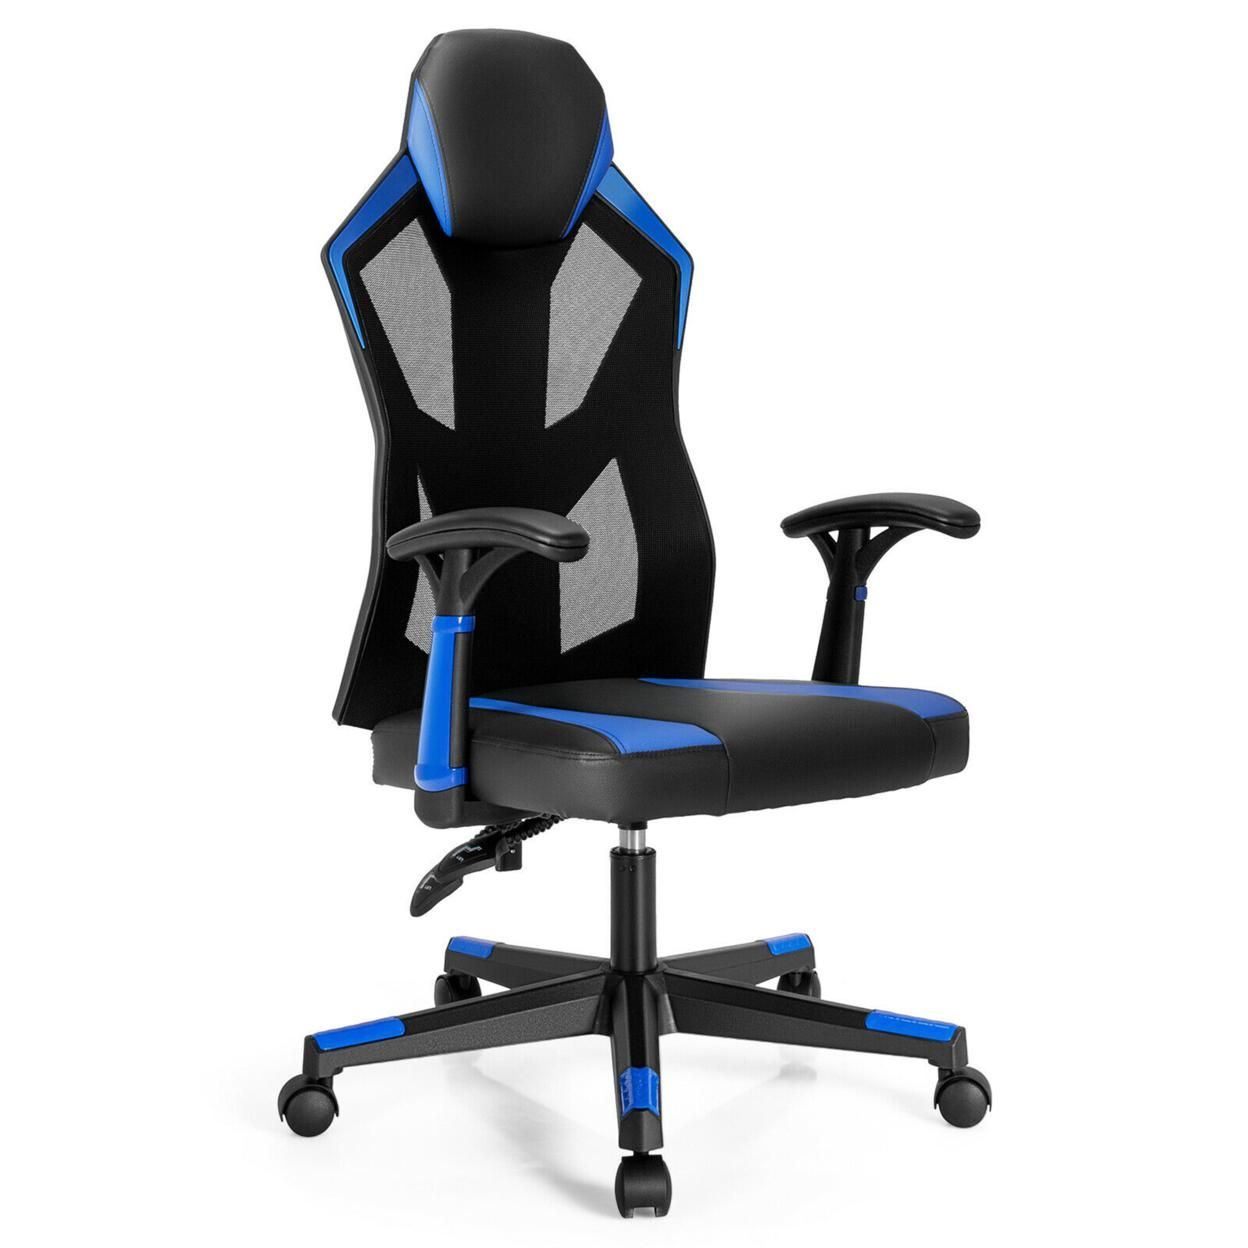 Gymax Gaming Chair Swivel Computer Office Chair w/ Adjustable Mesh Back